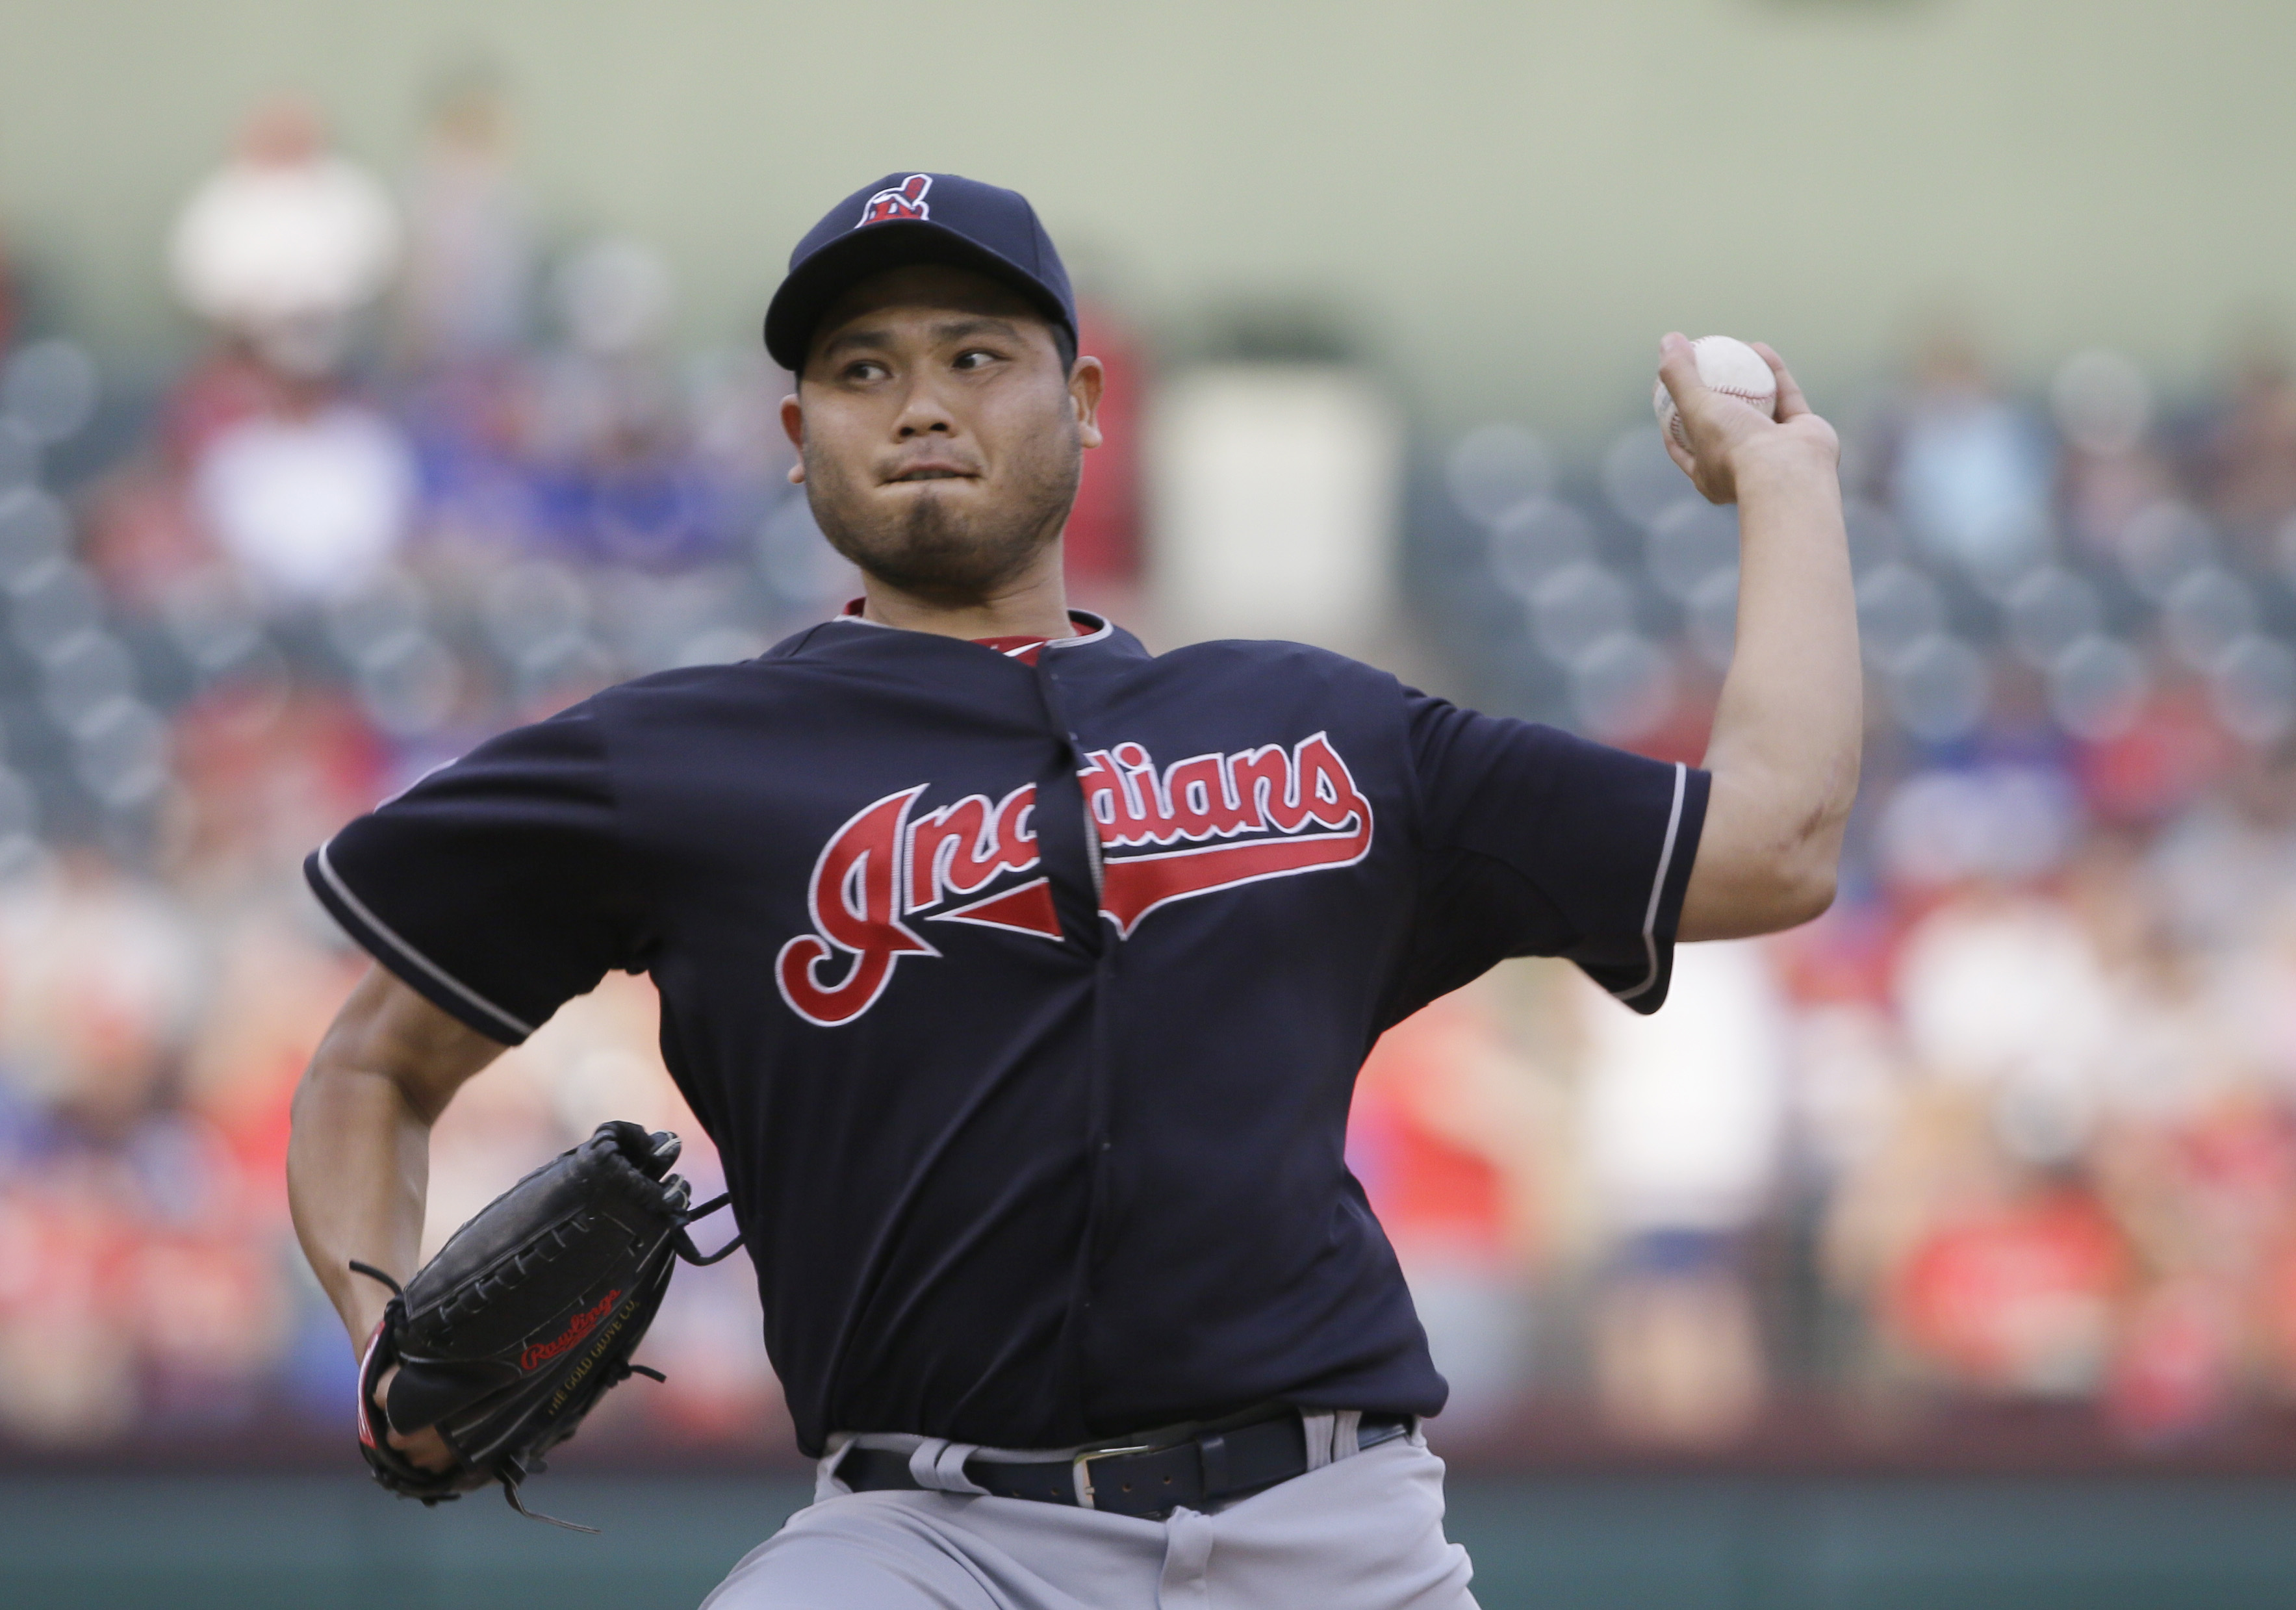 Cleveland Indians starting pitcher Bruce Chen throws during the first inning of a baseball game against the Texas Rangers in Arlington, Texas, Friday, May 15, 2015. (AP Photo/LM Otero)